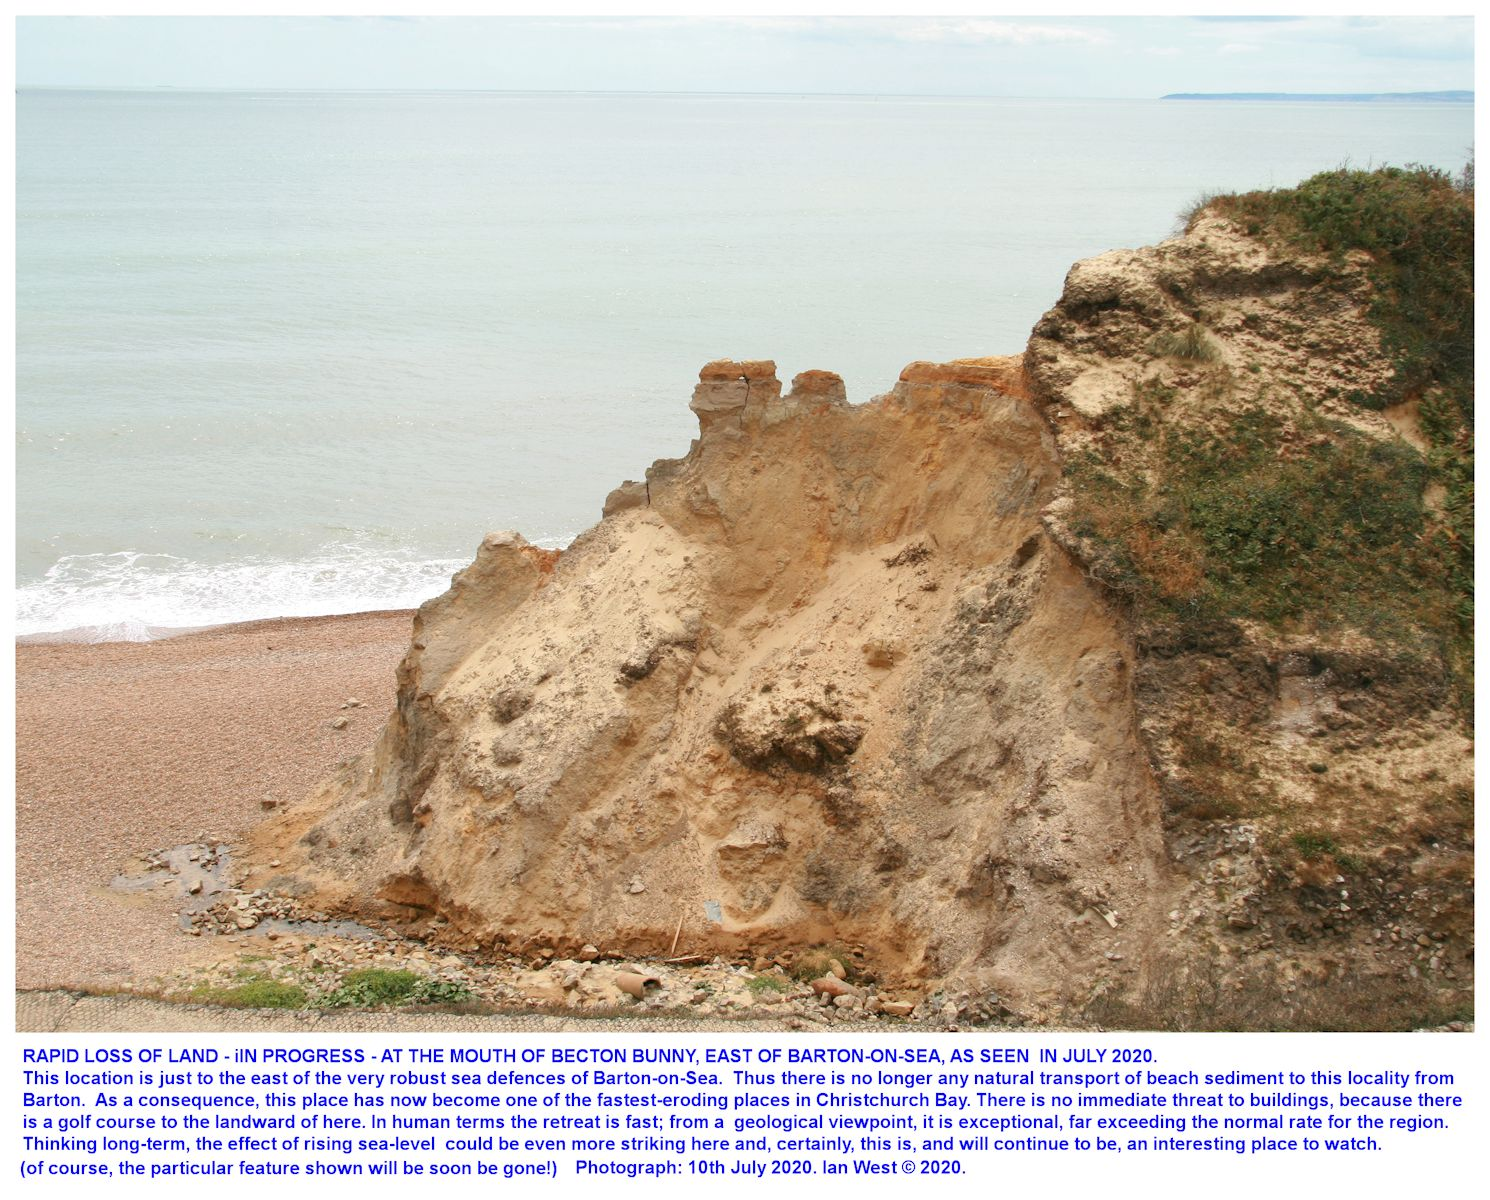 Rapid erosion of the Barton Sand or Becton Sand Formation taking place in the cliff at the mouth of Becton Bunny, east of Barton-on-Sea, Hampshire, as seen on the 10th July 2020, Ian West